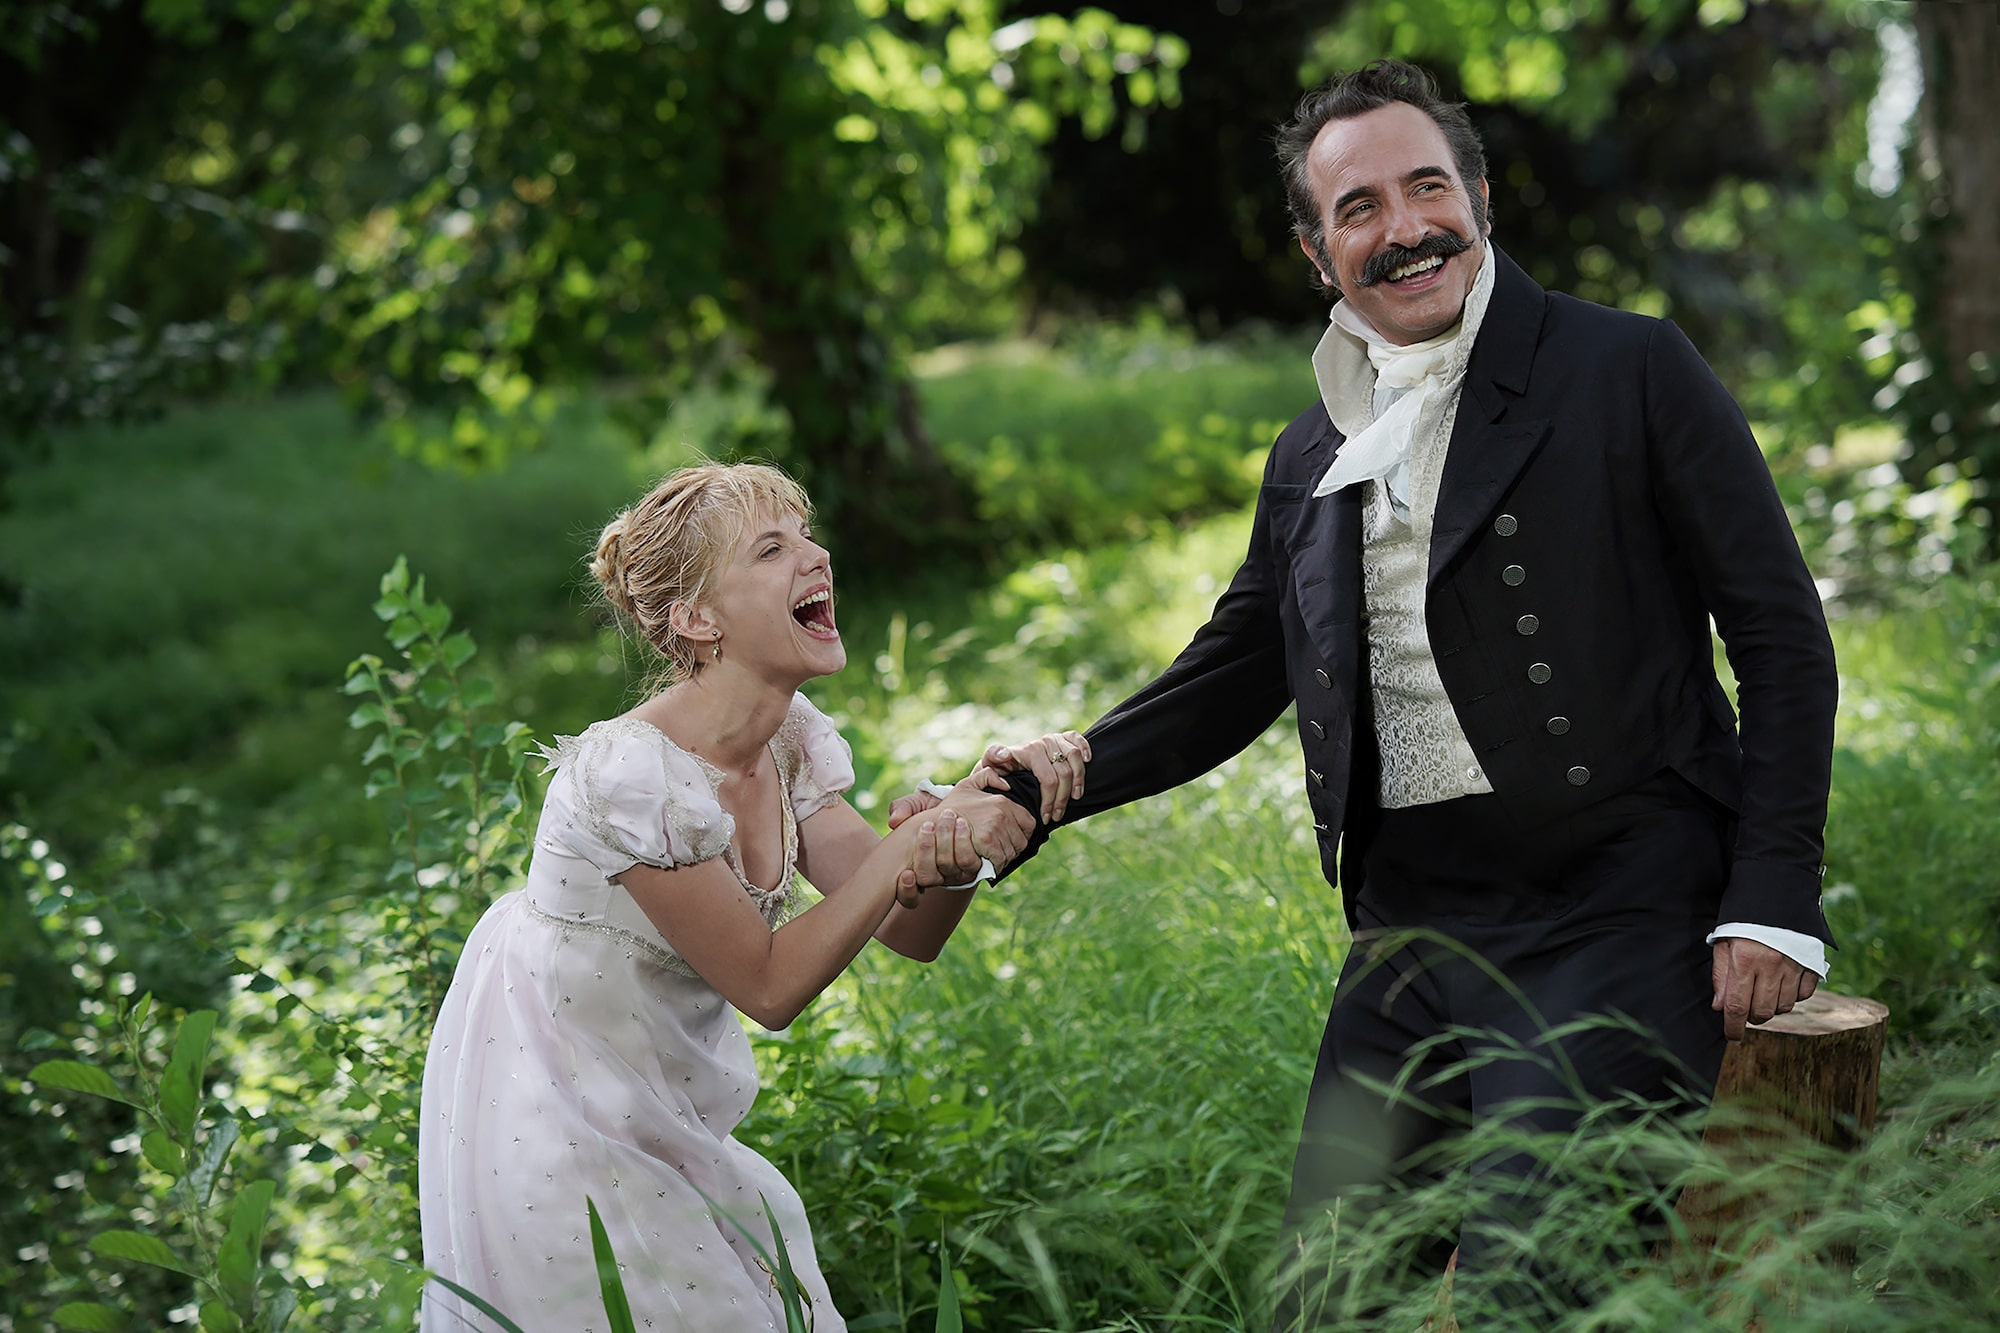 Christophe Brachet Sony Alpha 9 jean dujardin and melanie laurent laughing in a break between filming takes